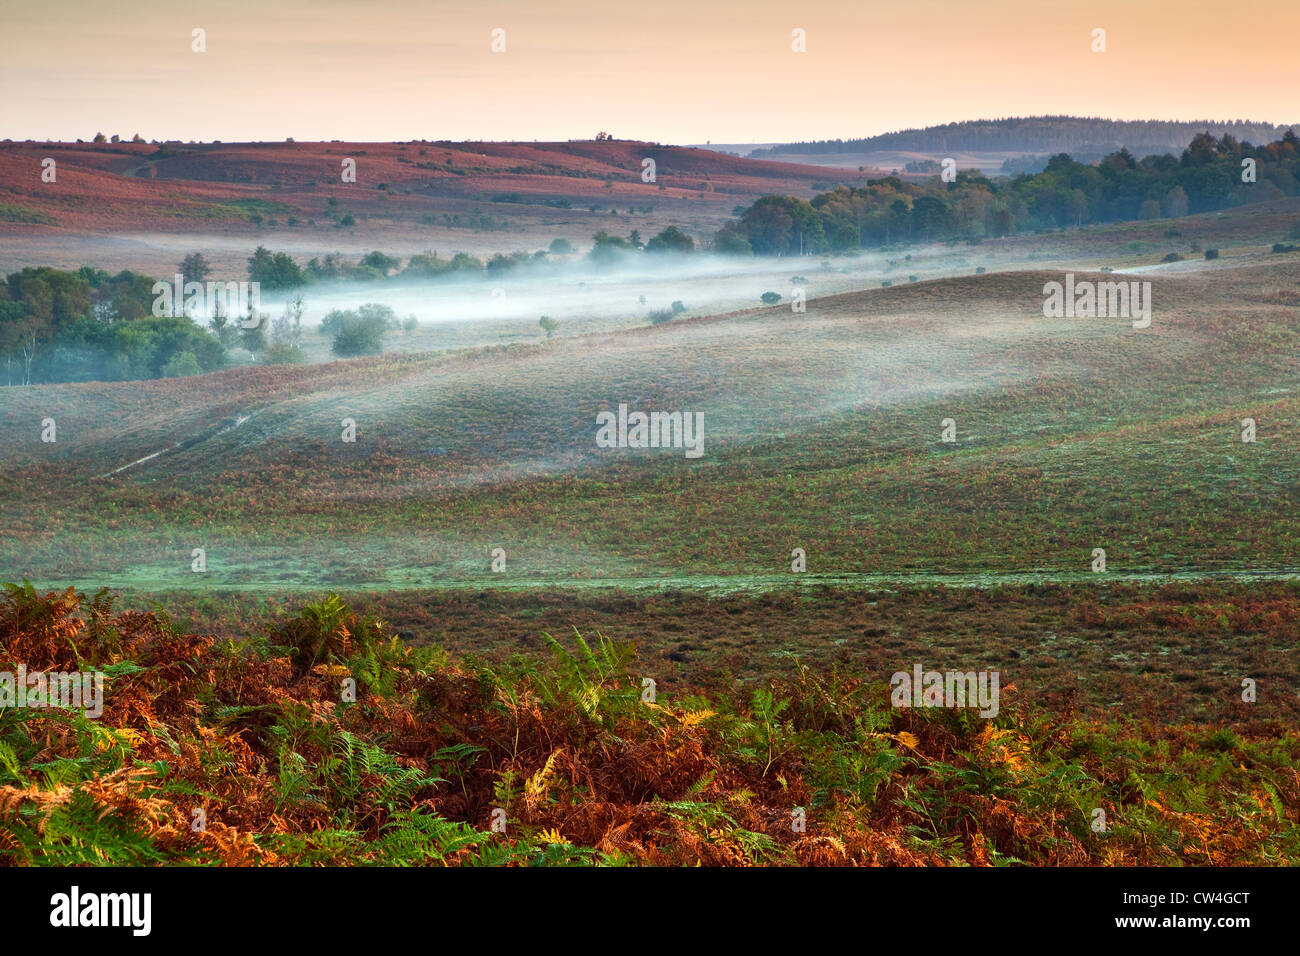 An early morning view of Rockford Common, in the New Forest National Park, in autumn with mist - Stock Image